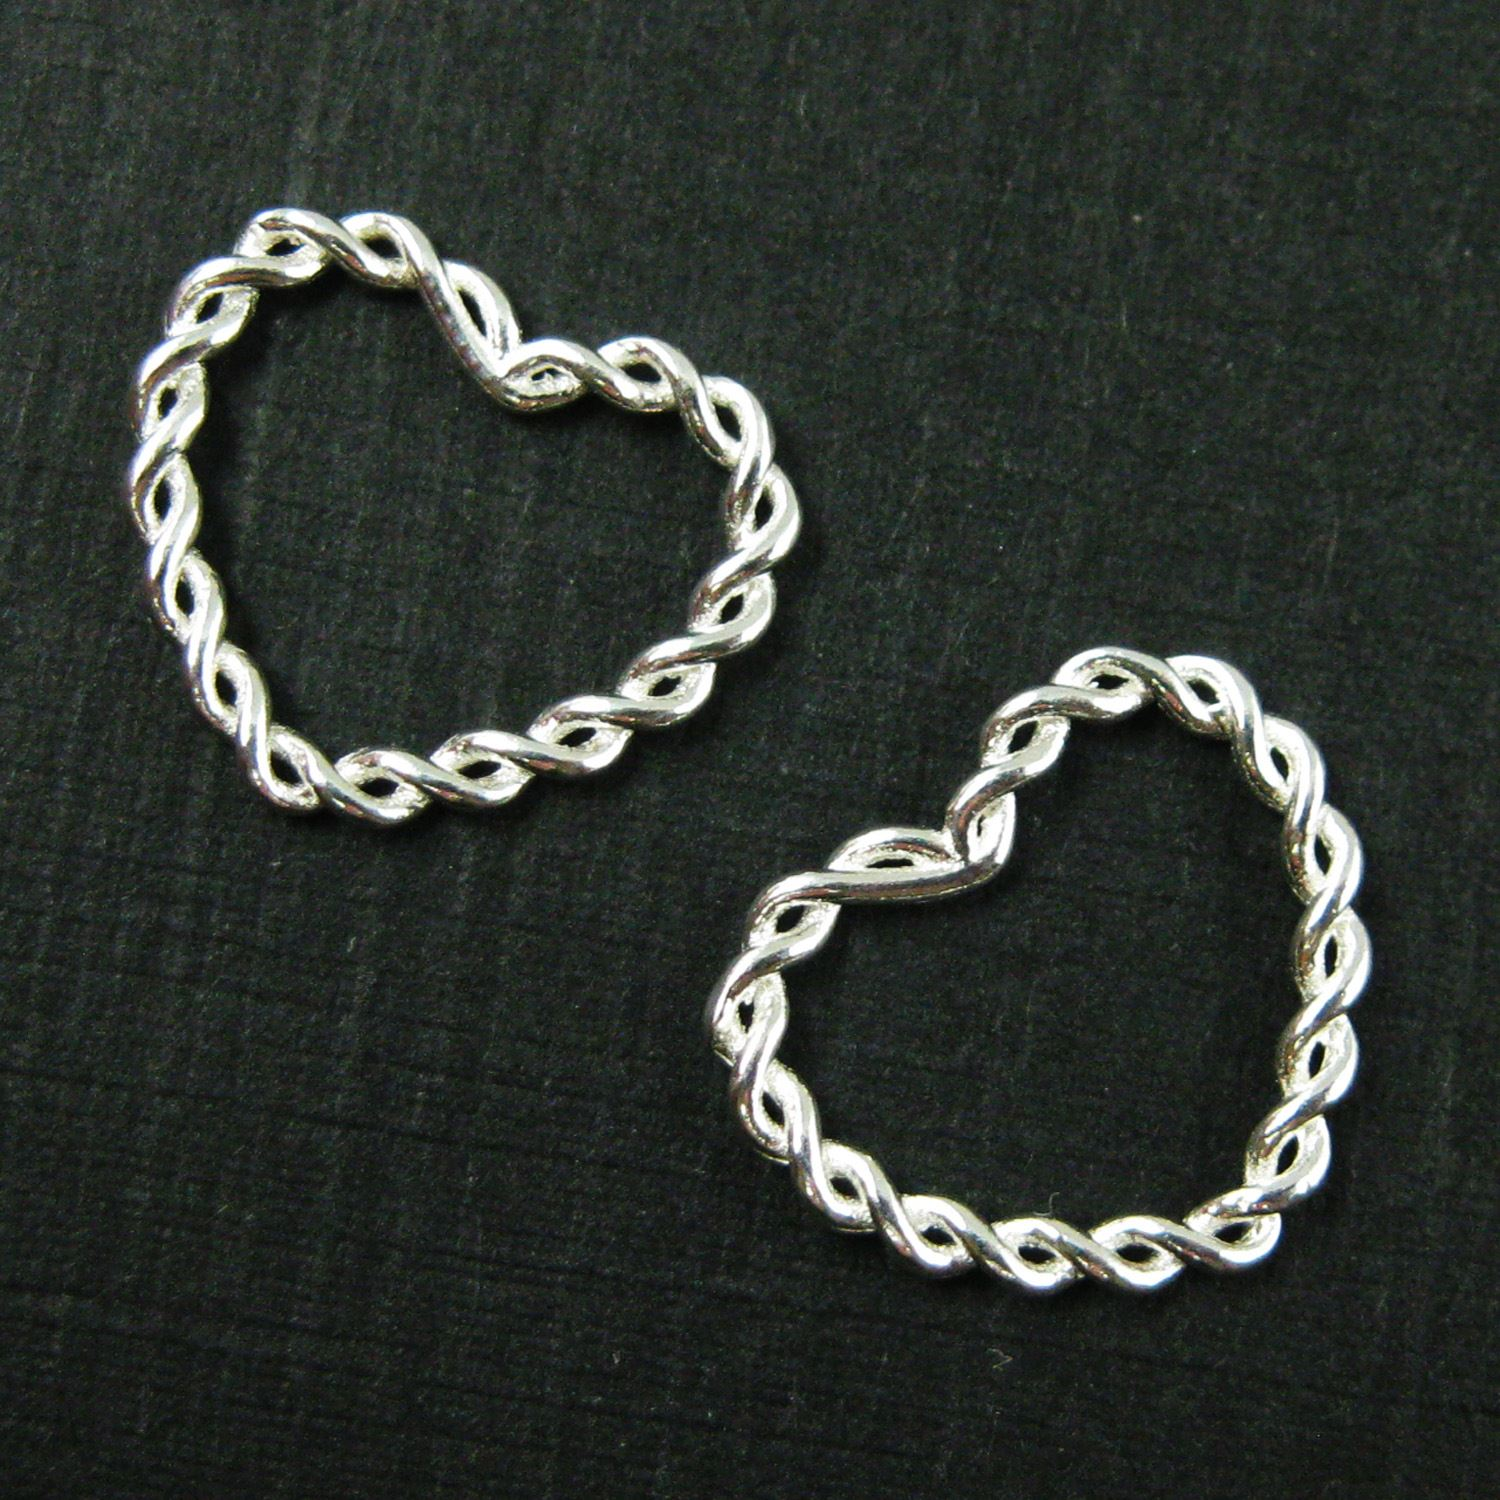 925 Sterling Silver Charm-Twisted Heart Closed Connector Ring - Silver Heart Link Charm Pendant-12mm   ( 3 pcs)